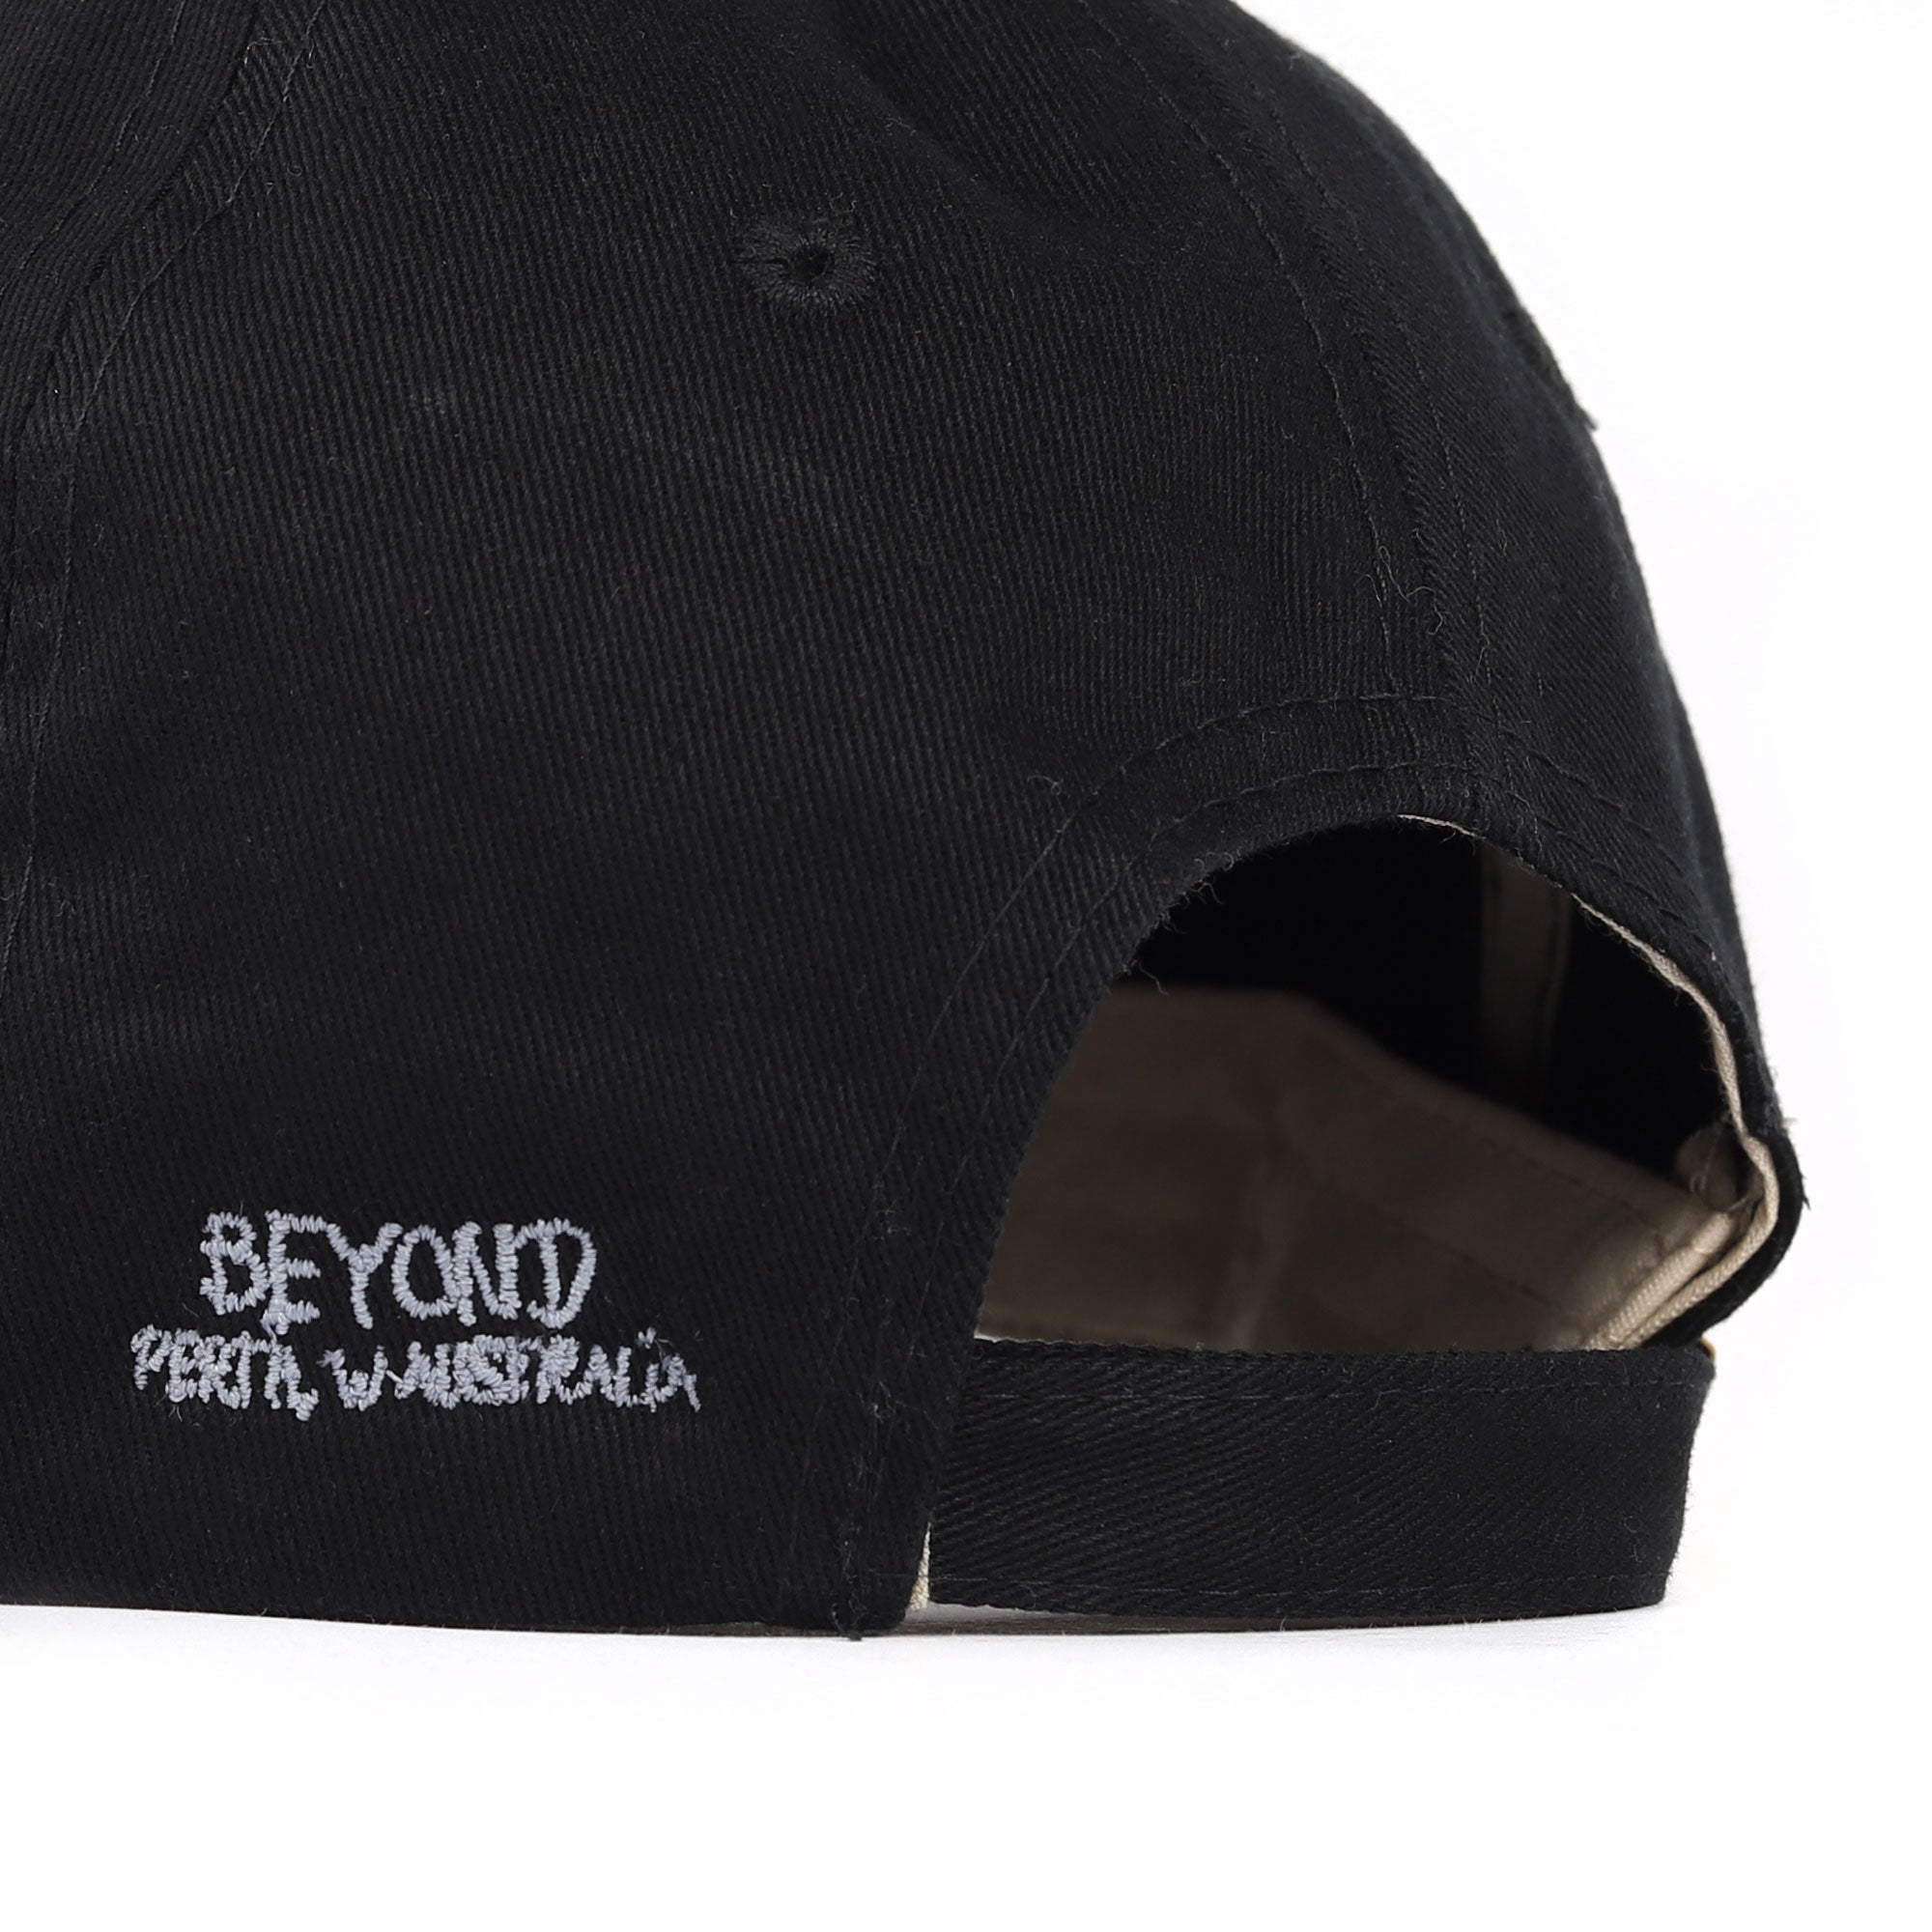 Beyond Gonz Cap Product Photo #3